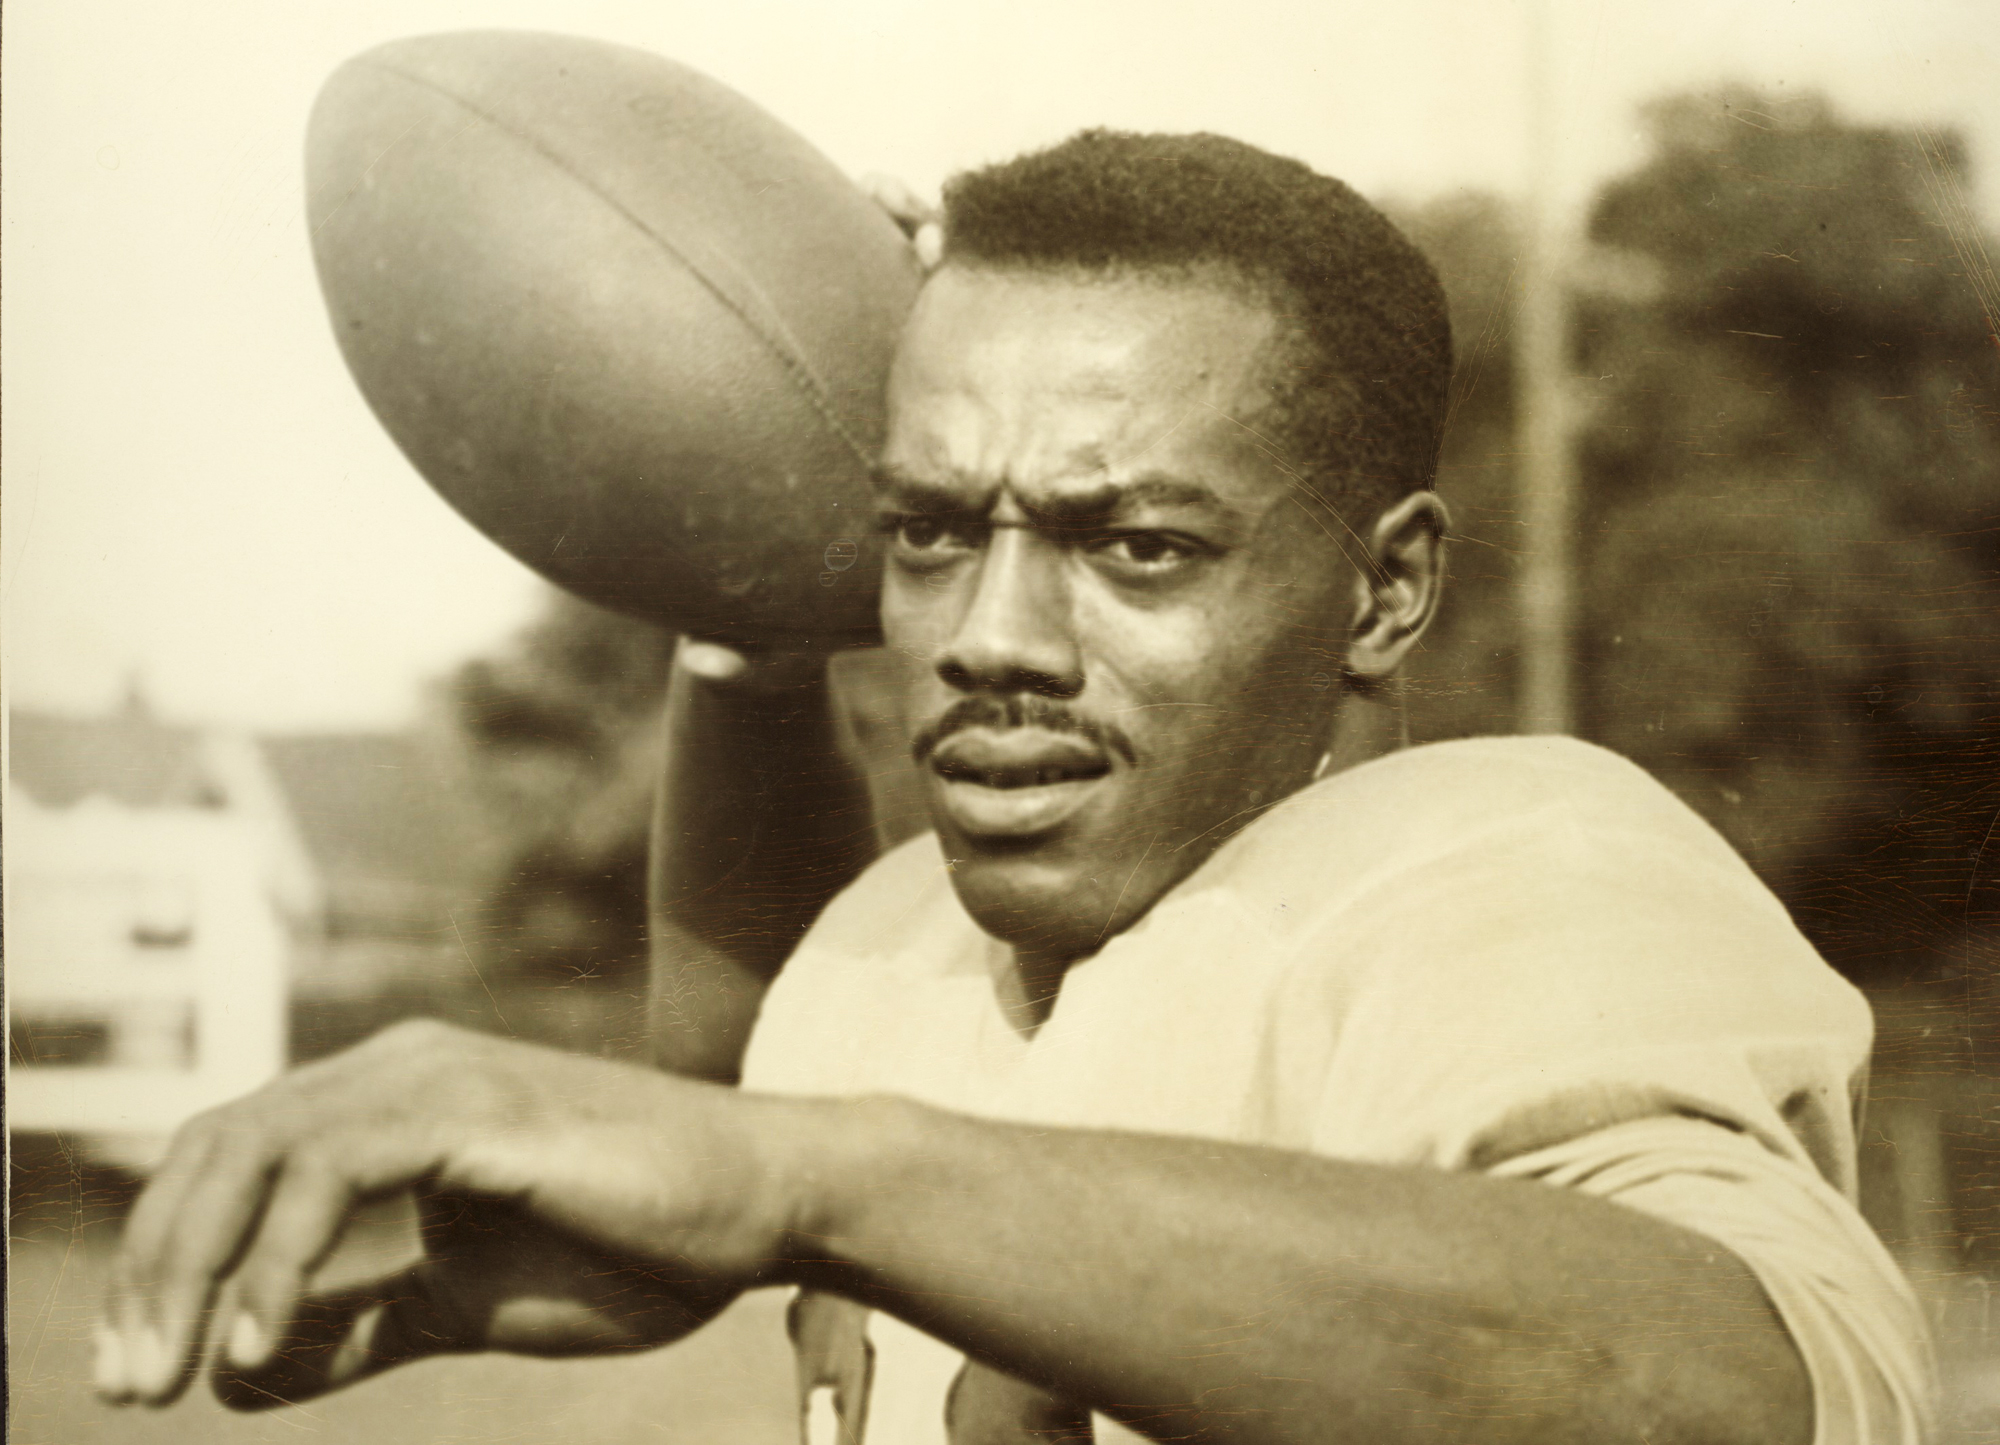 Bernie Custus, quarterback for the Hamilton Tiger-Cats